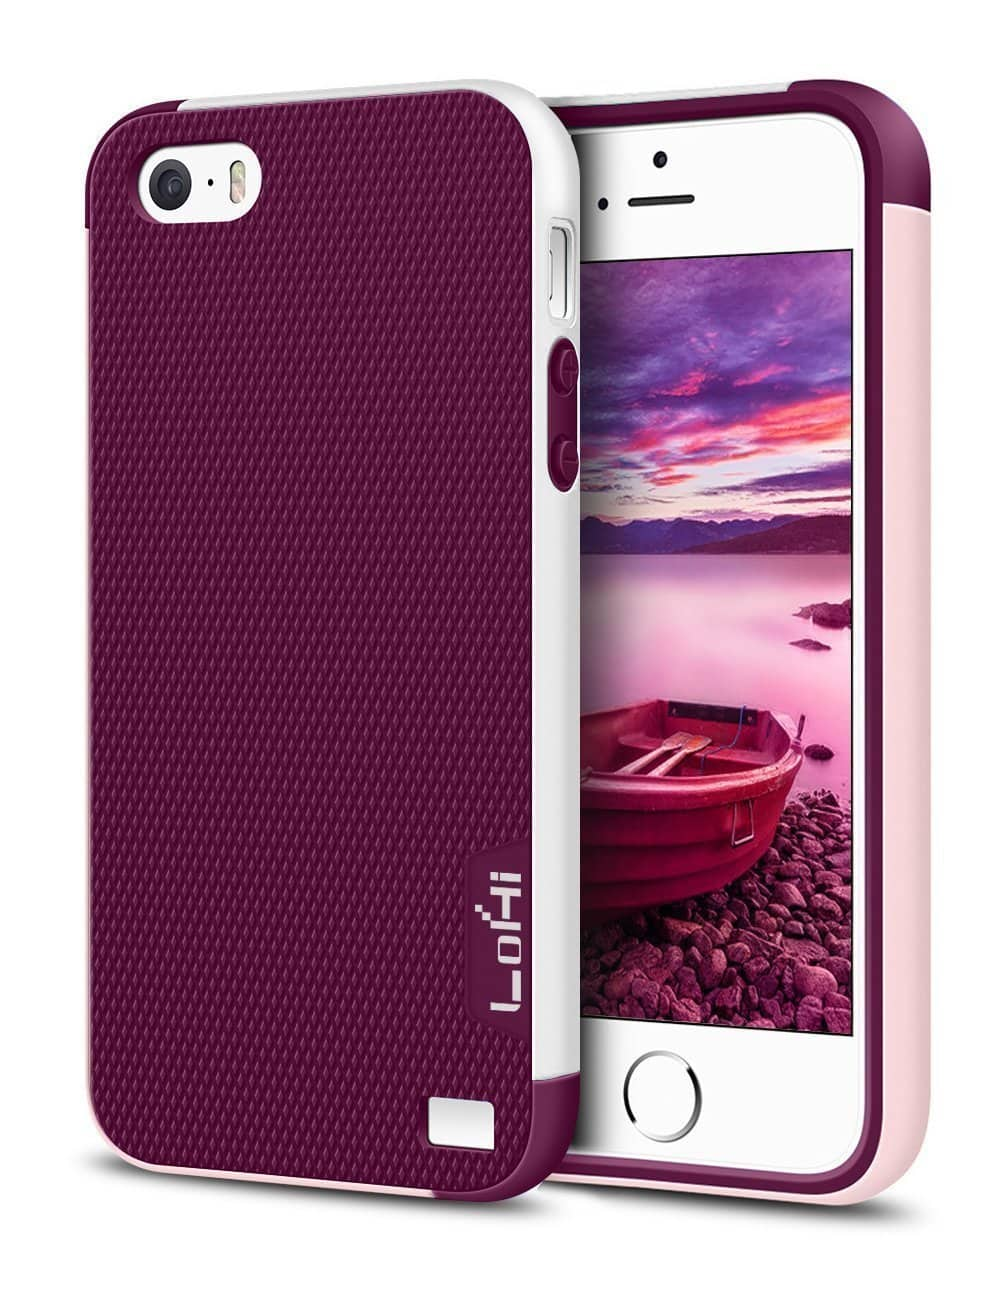 iphone 4 protective cases iphone 5s dual protection anti scratch shockproof 14394